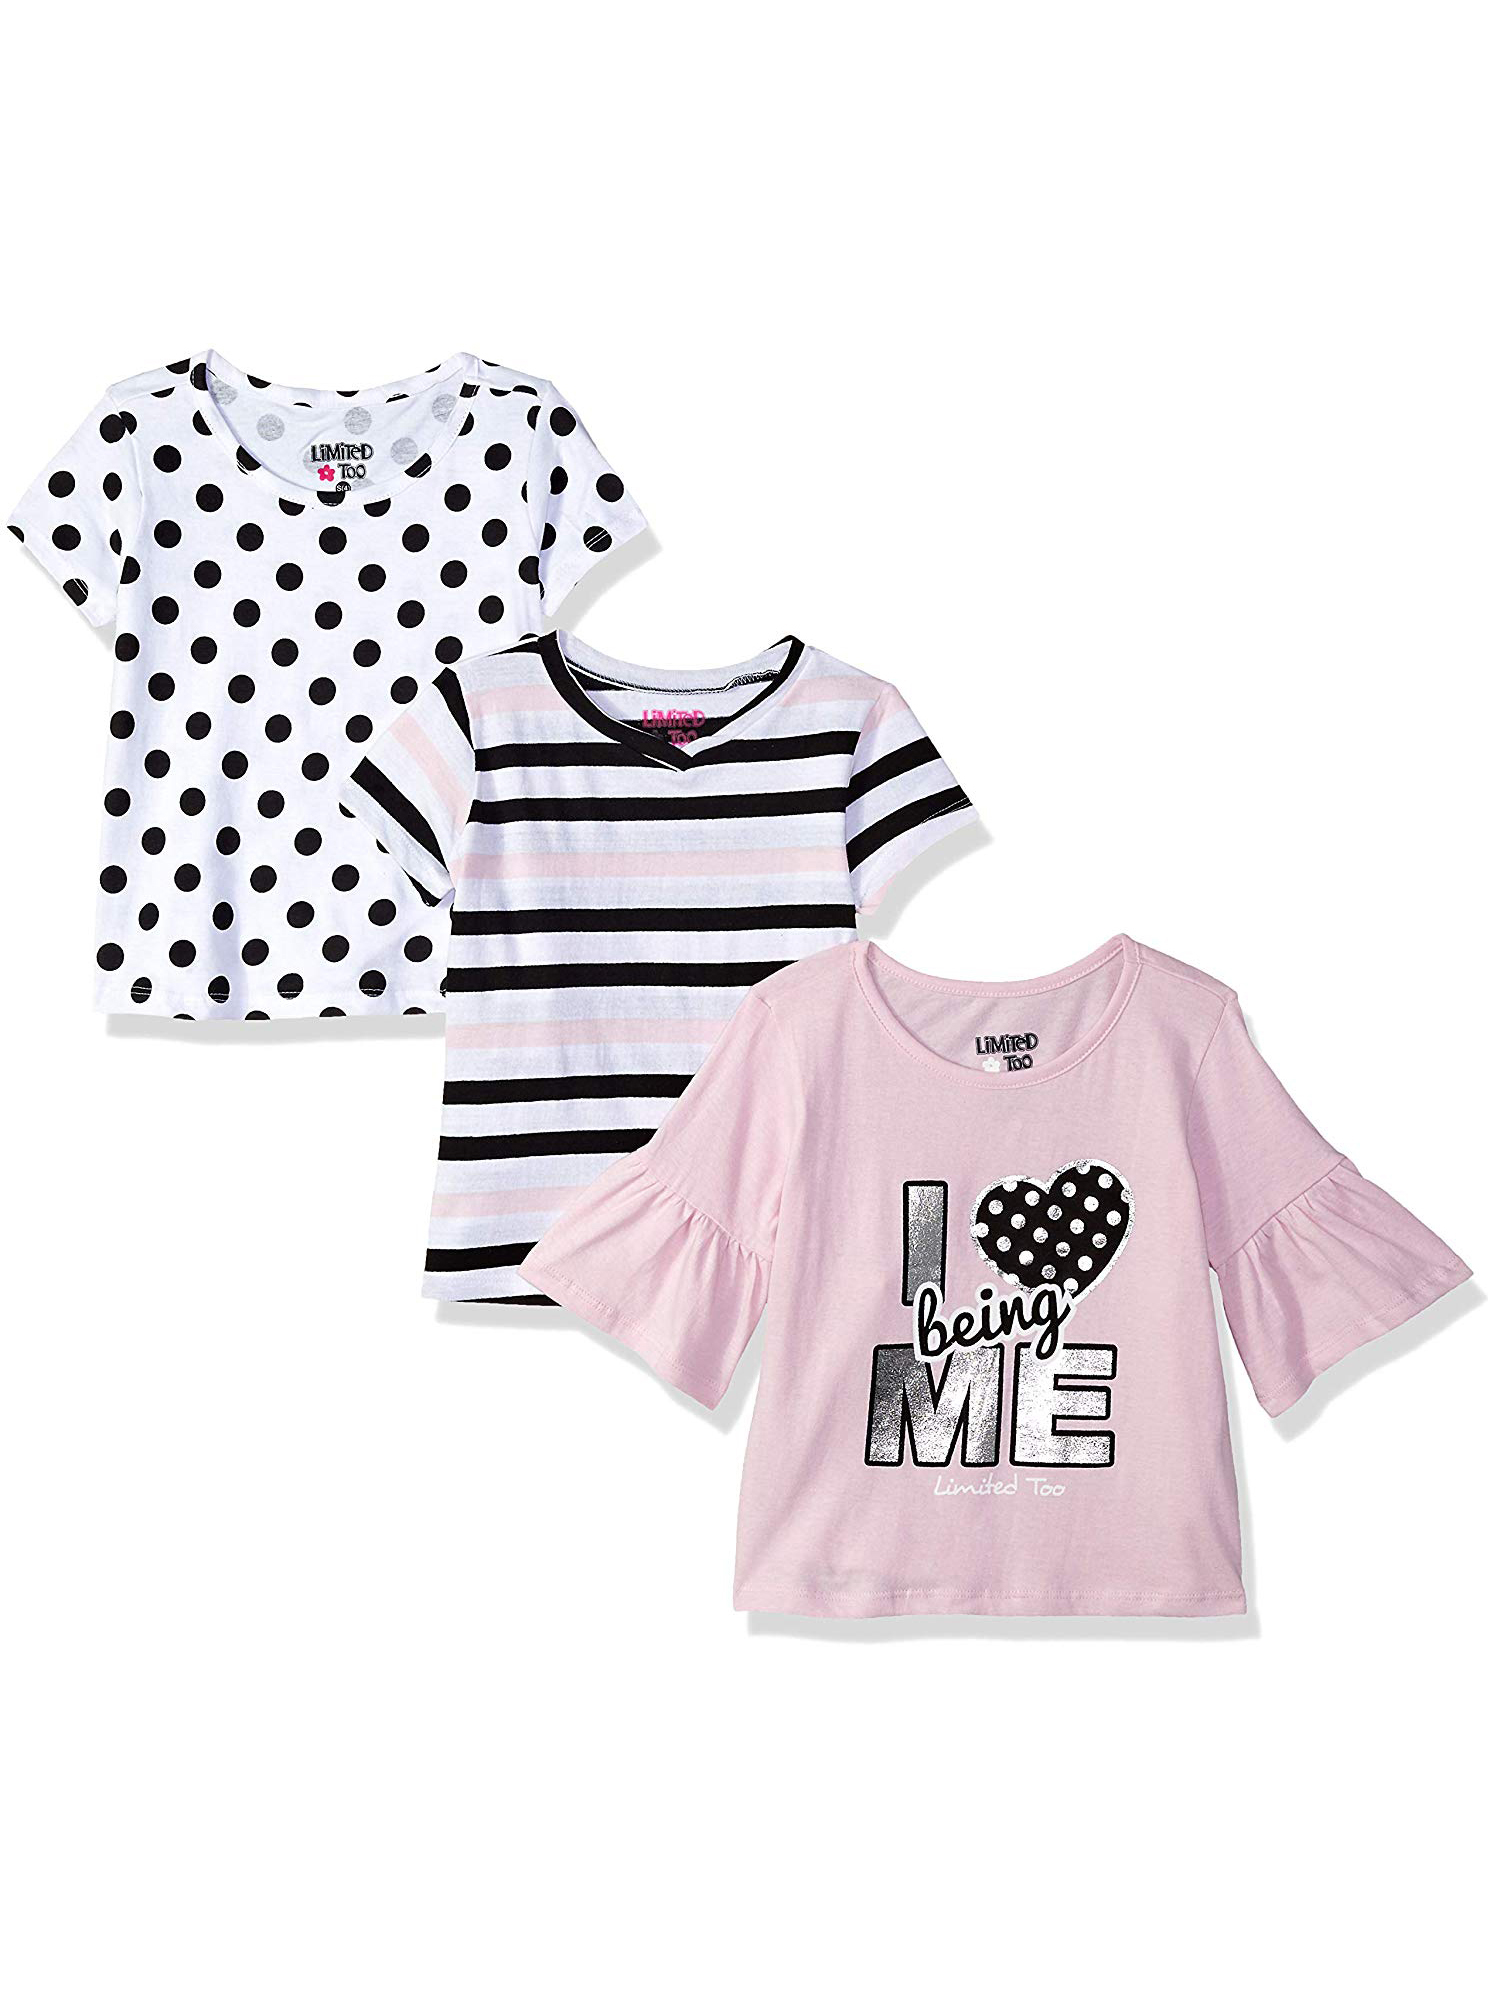 Ruffled Sleeve Graphic, Print and Solid Tees, 3-Pack (Little Girls & Big Girls)